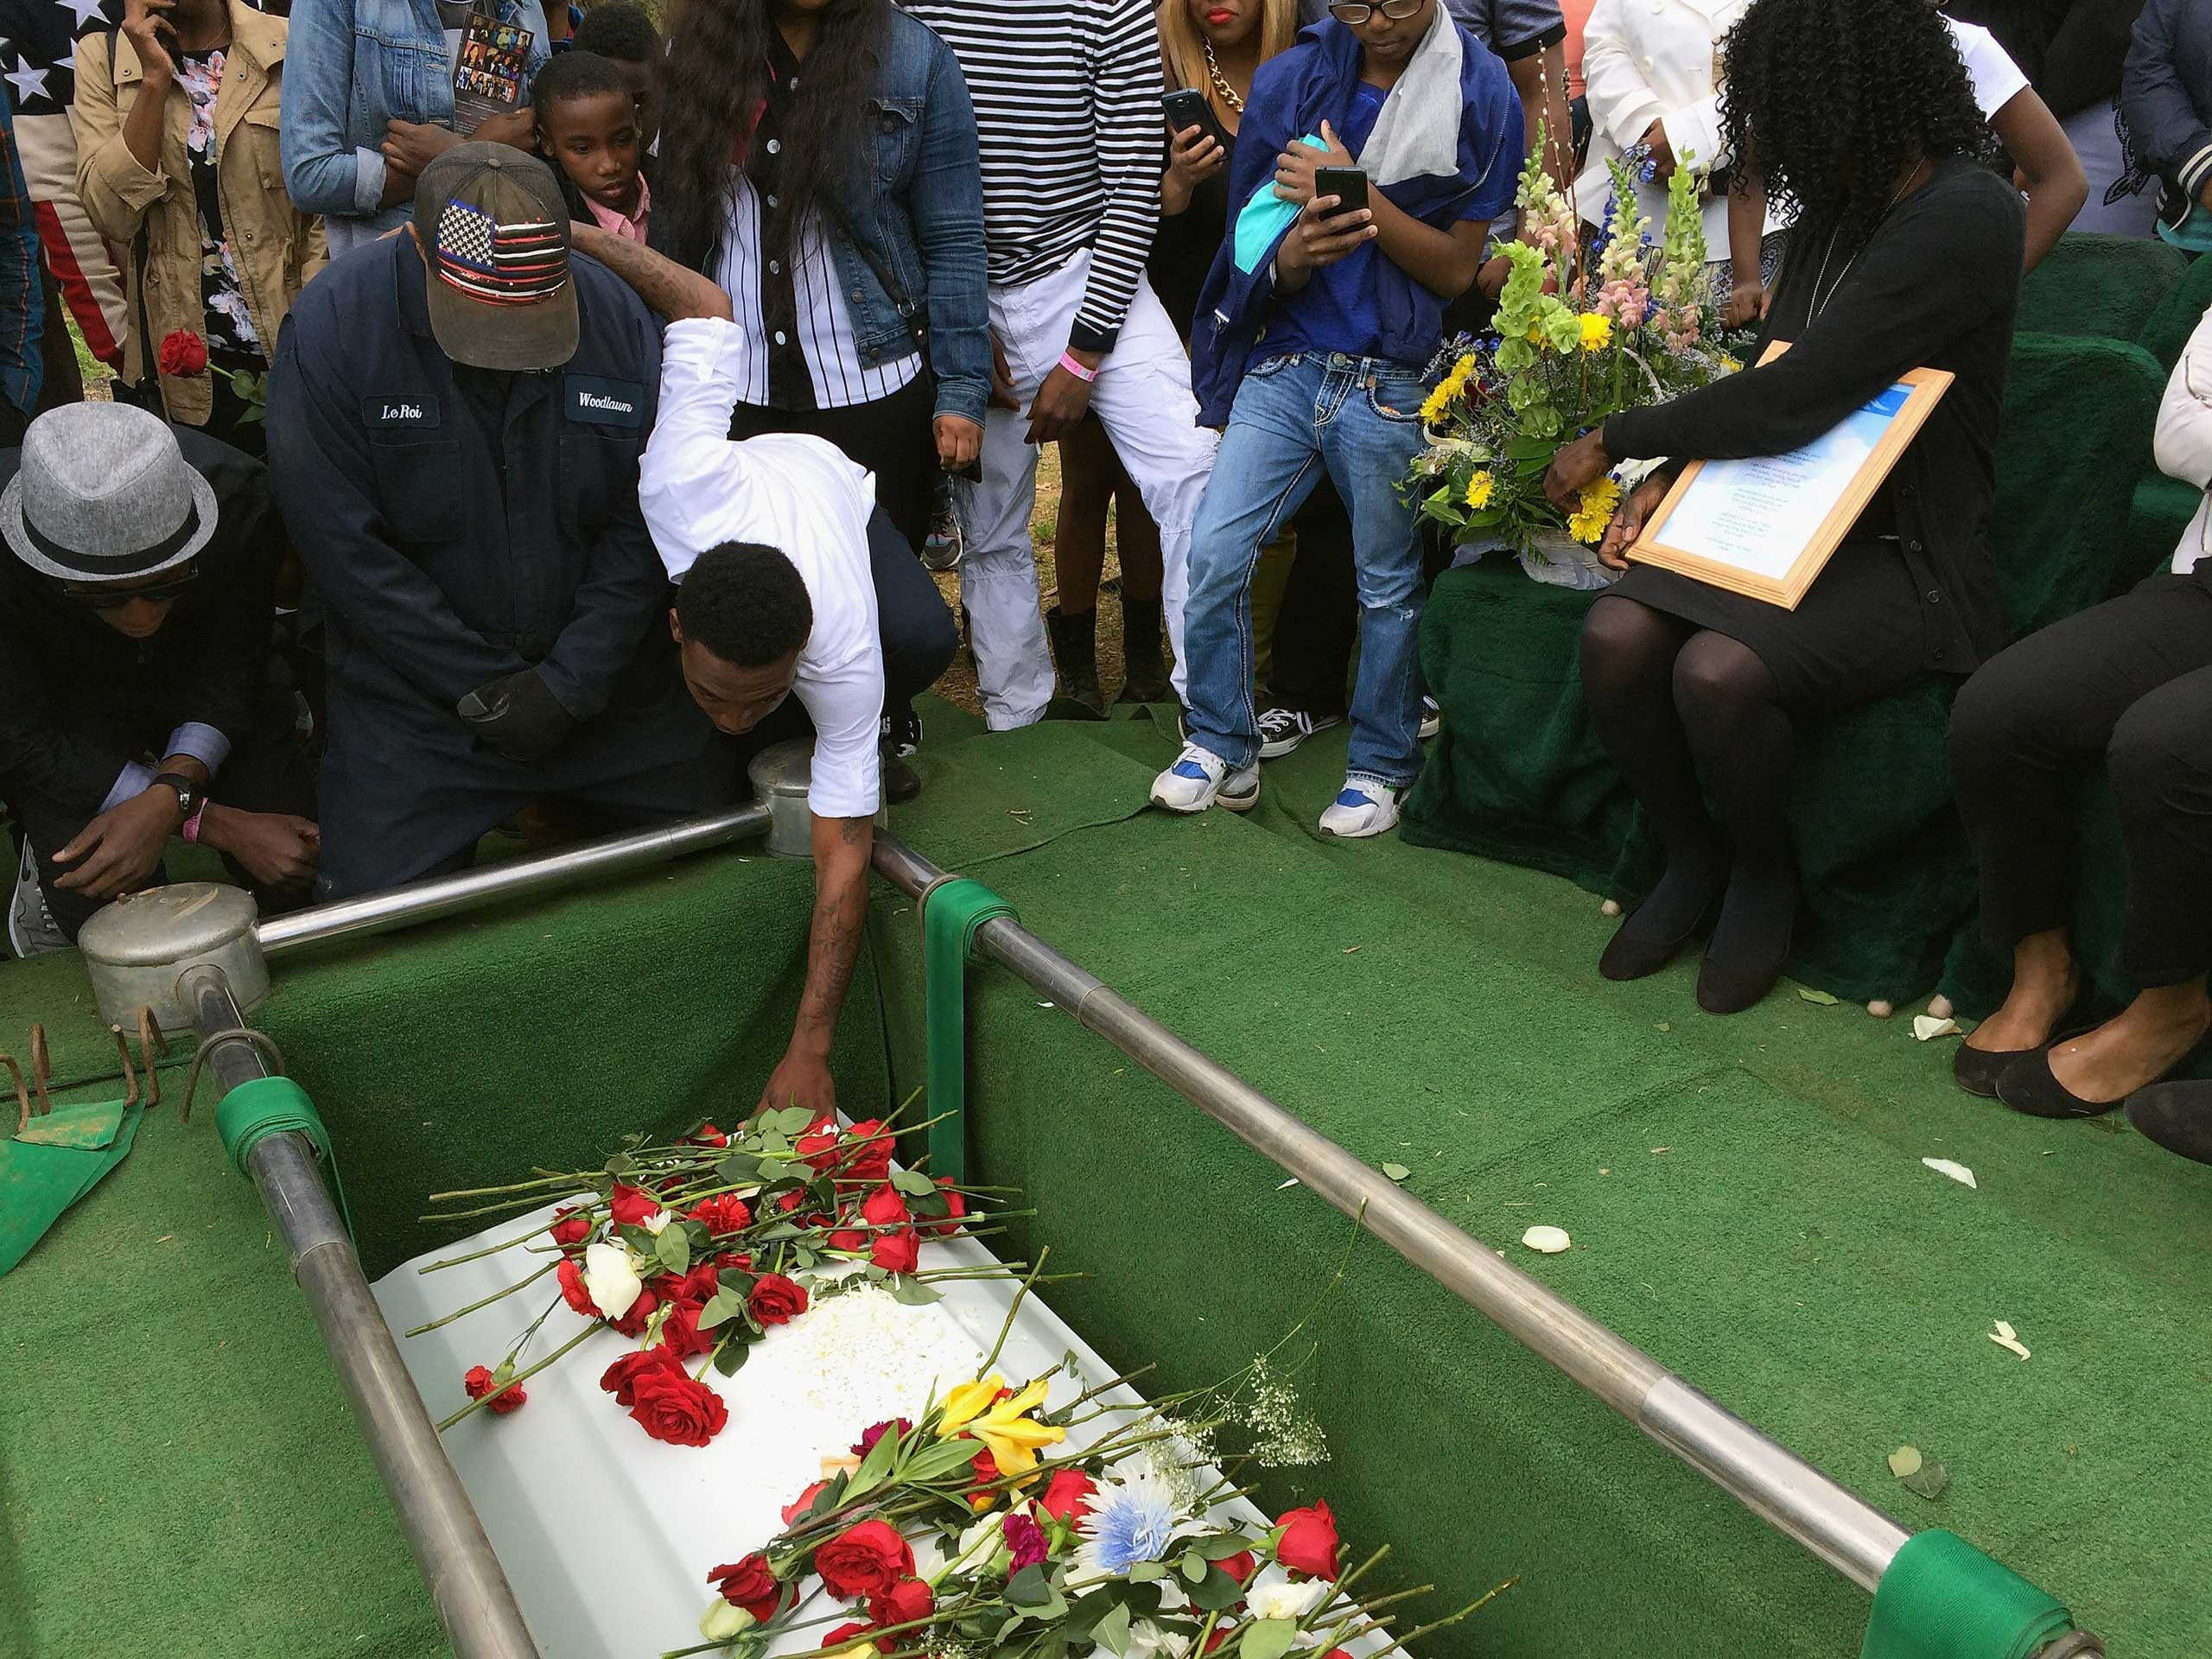 Friends and relatives say their last goodbyes to Freddie Gray as his casket is lowered into his grave at the Woodland Cemetery in Baltimore on April 27, 2015.